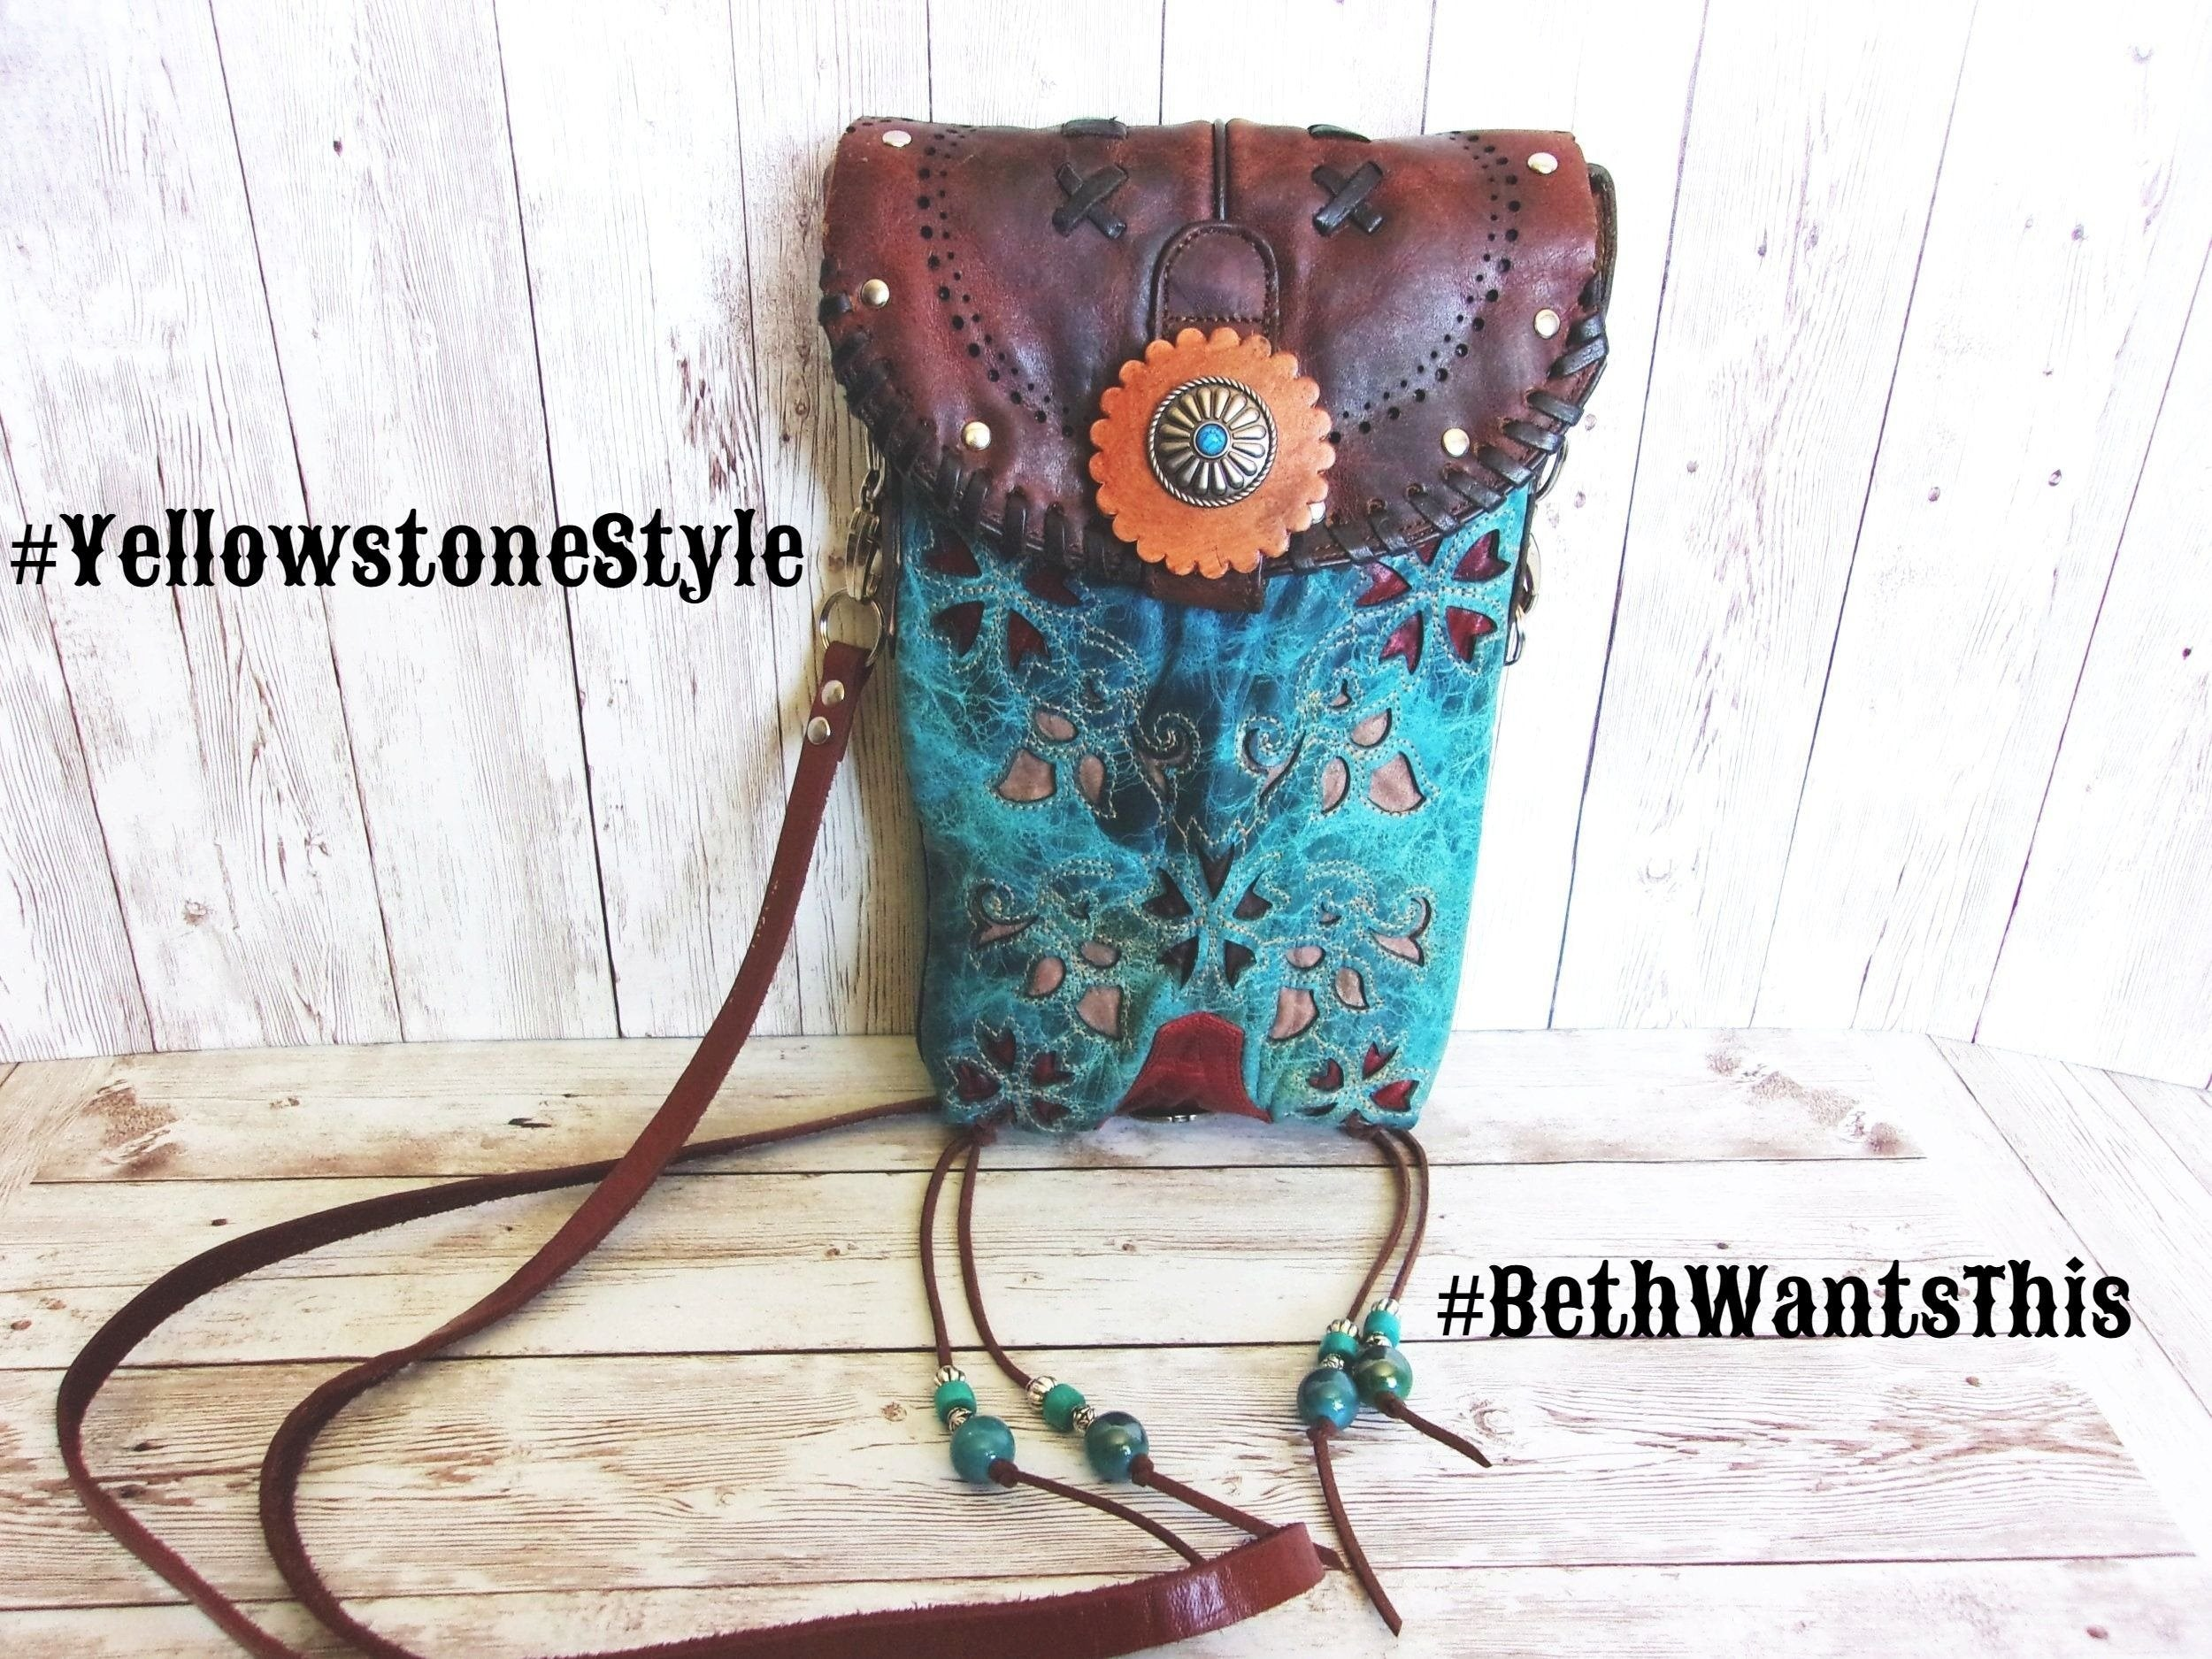 Unique Handcrafted Cross-Body Bags from $129 - Distinctive Western Handbags, Purses and Totes